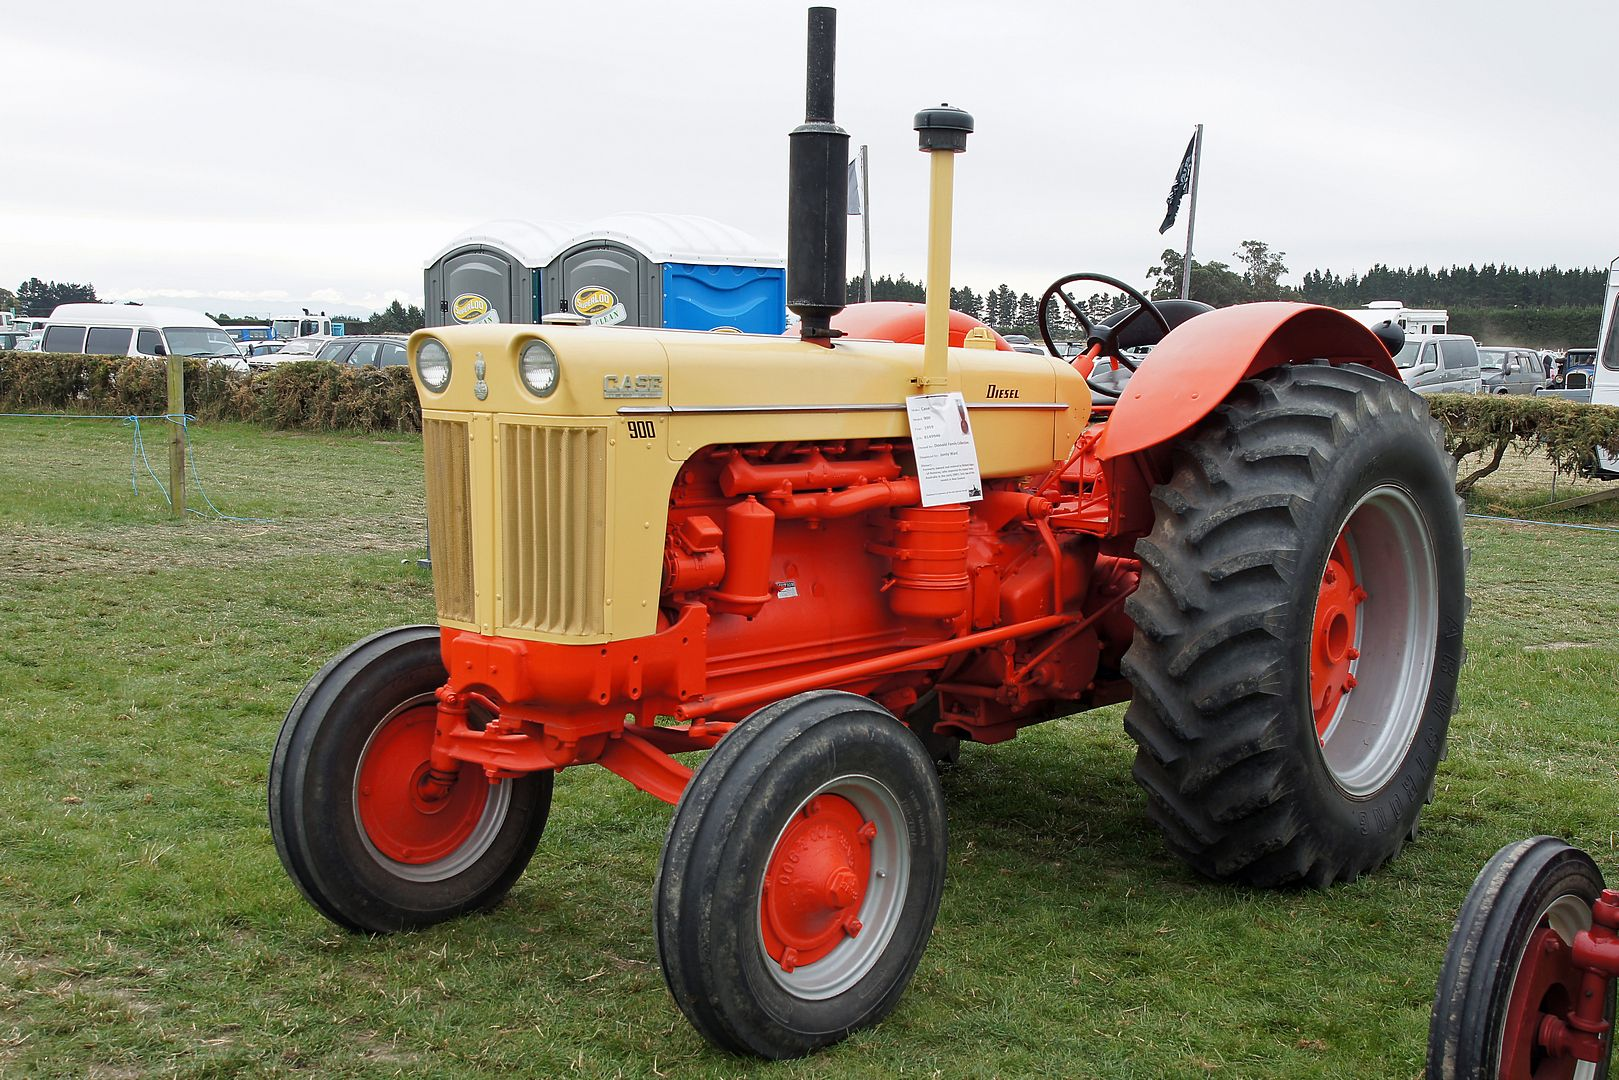 Old Case Tractor : Case old tractors pinterest tractor